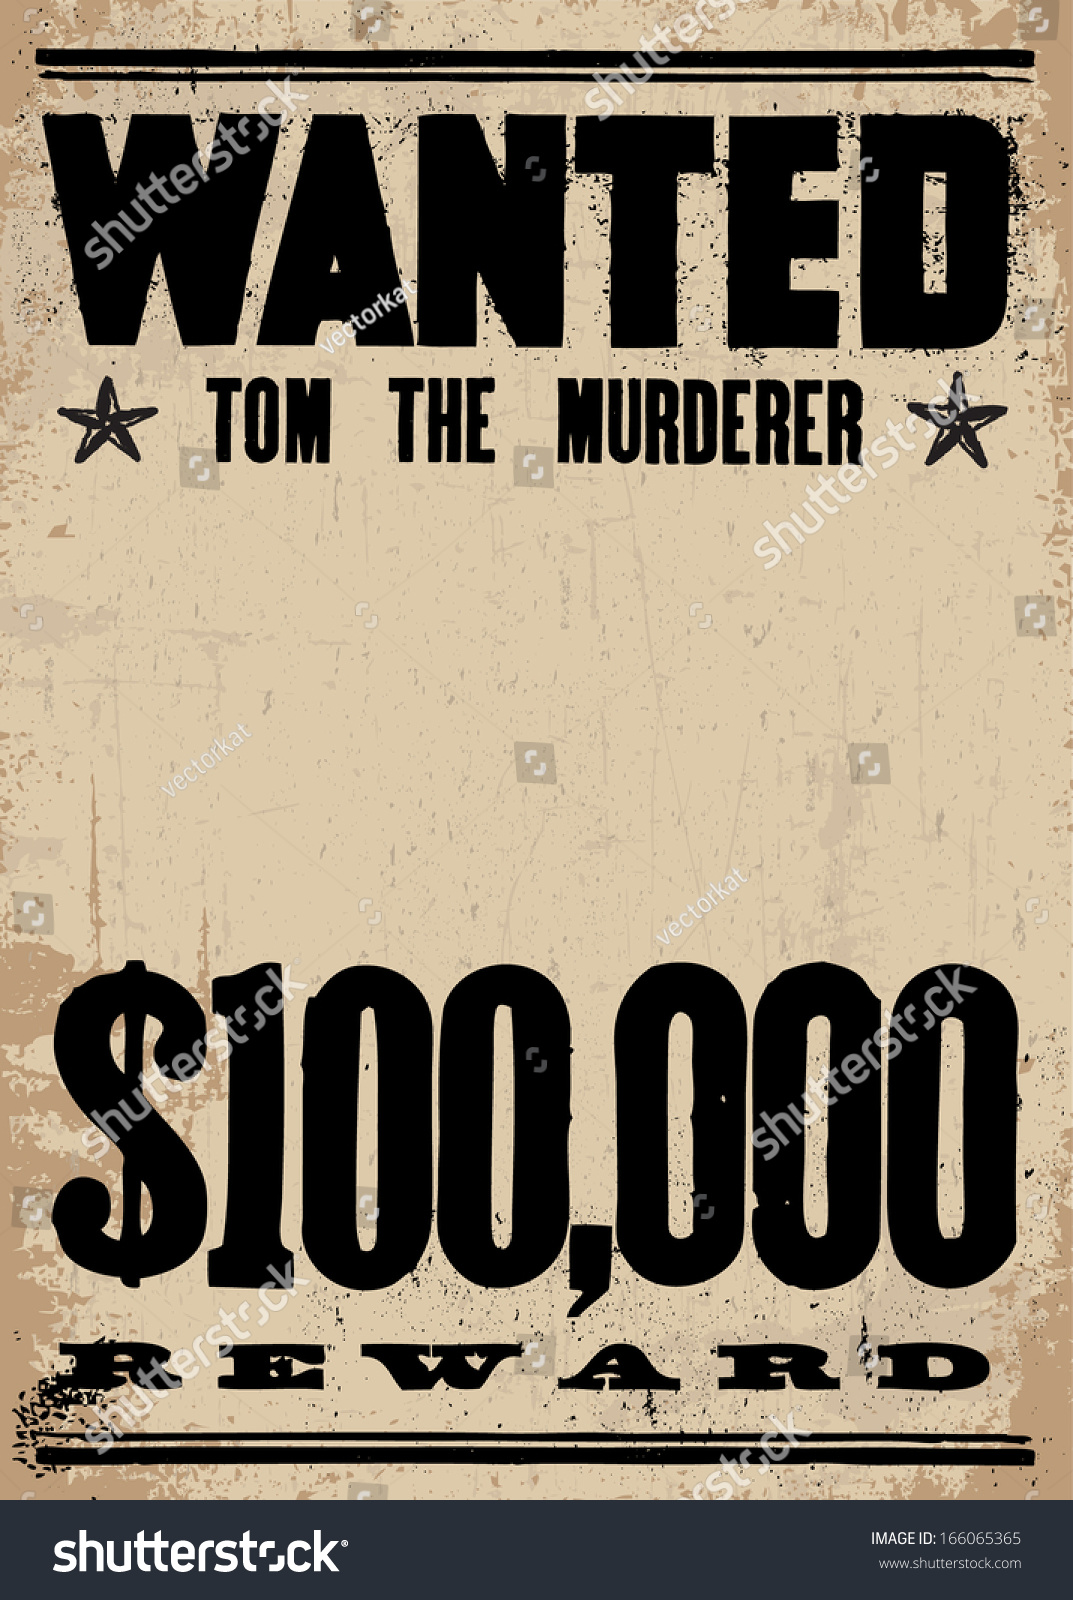 Criminal Wanted Poster WANTED MOST WANTED Wanted Poster Outlaw Wild ...